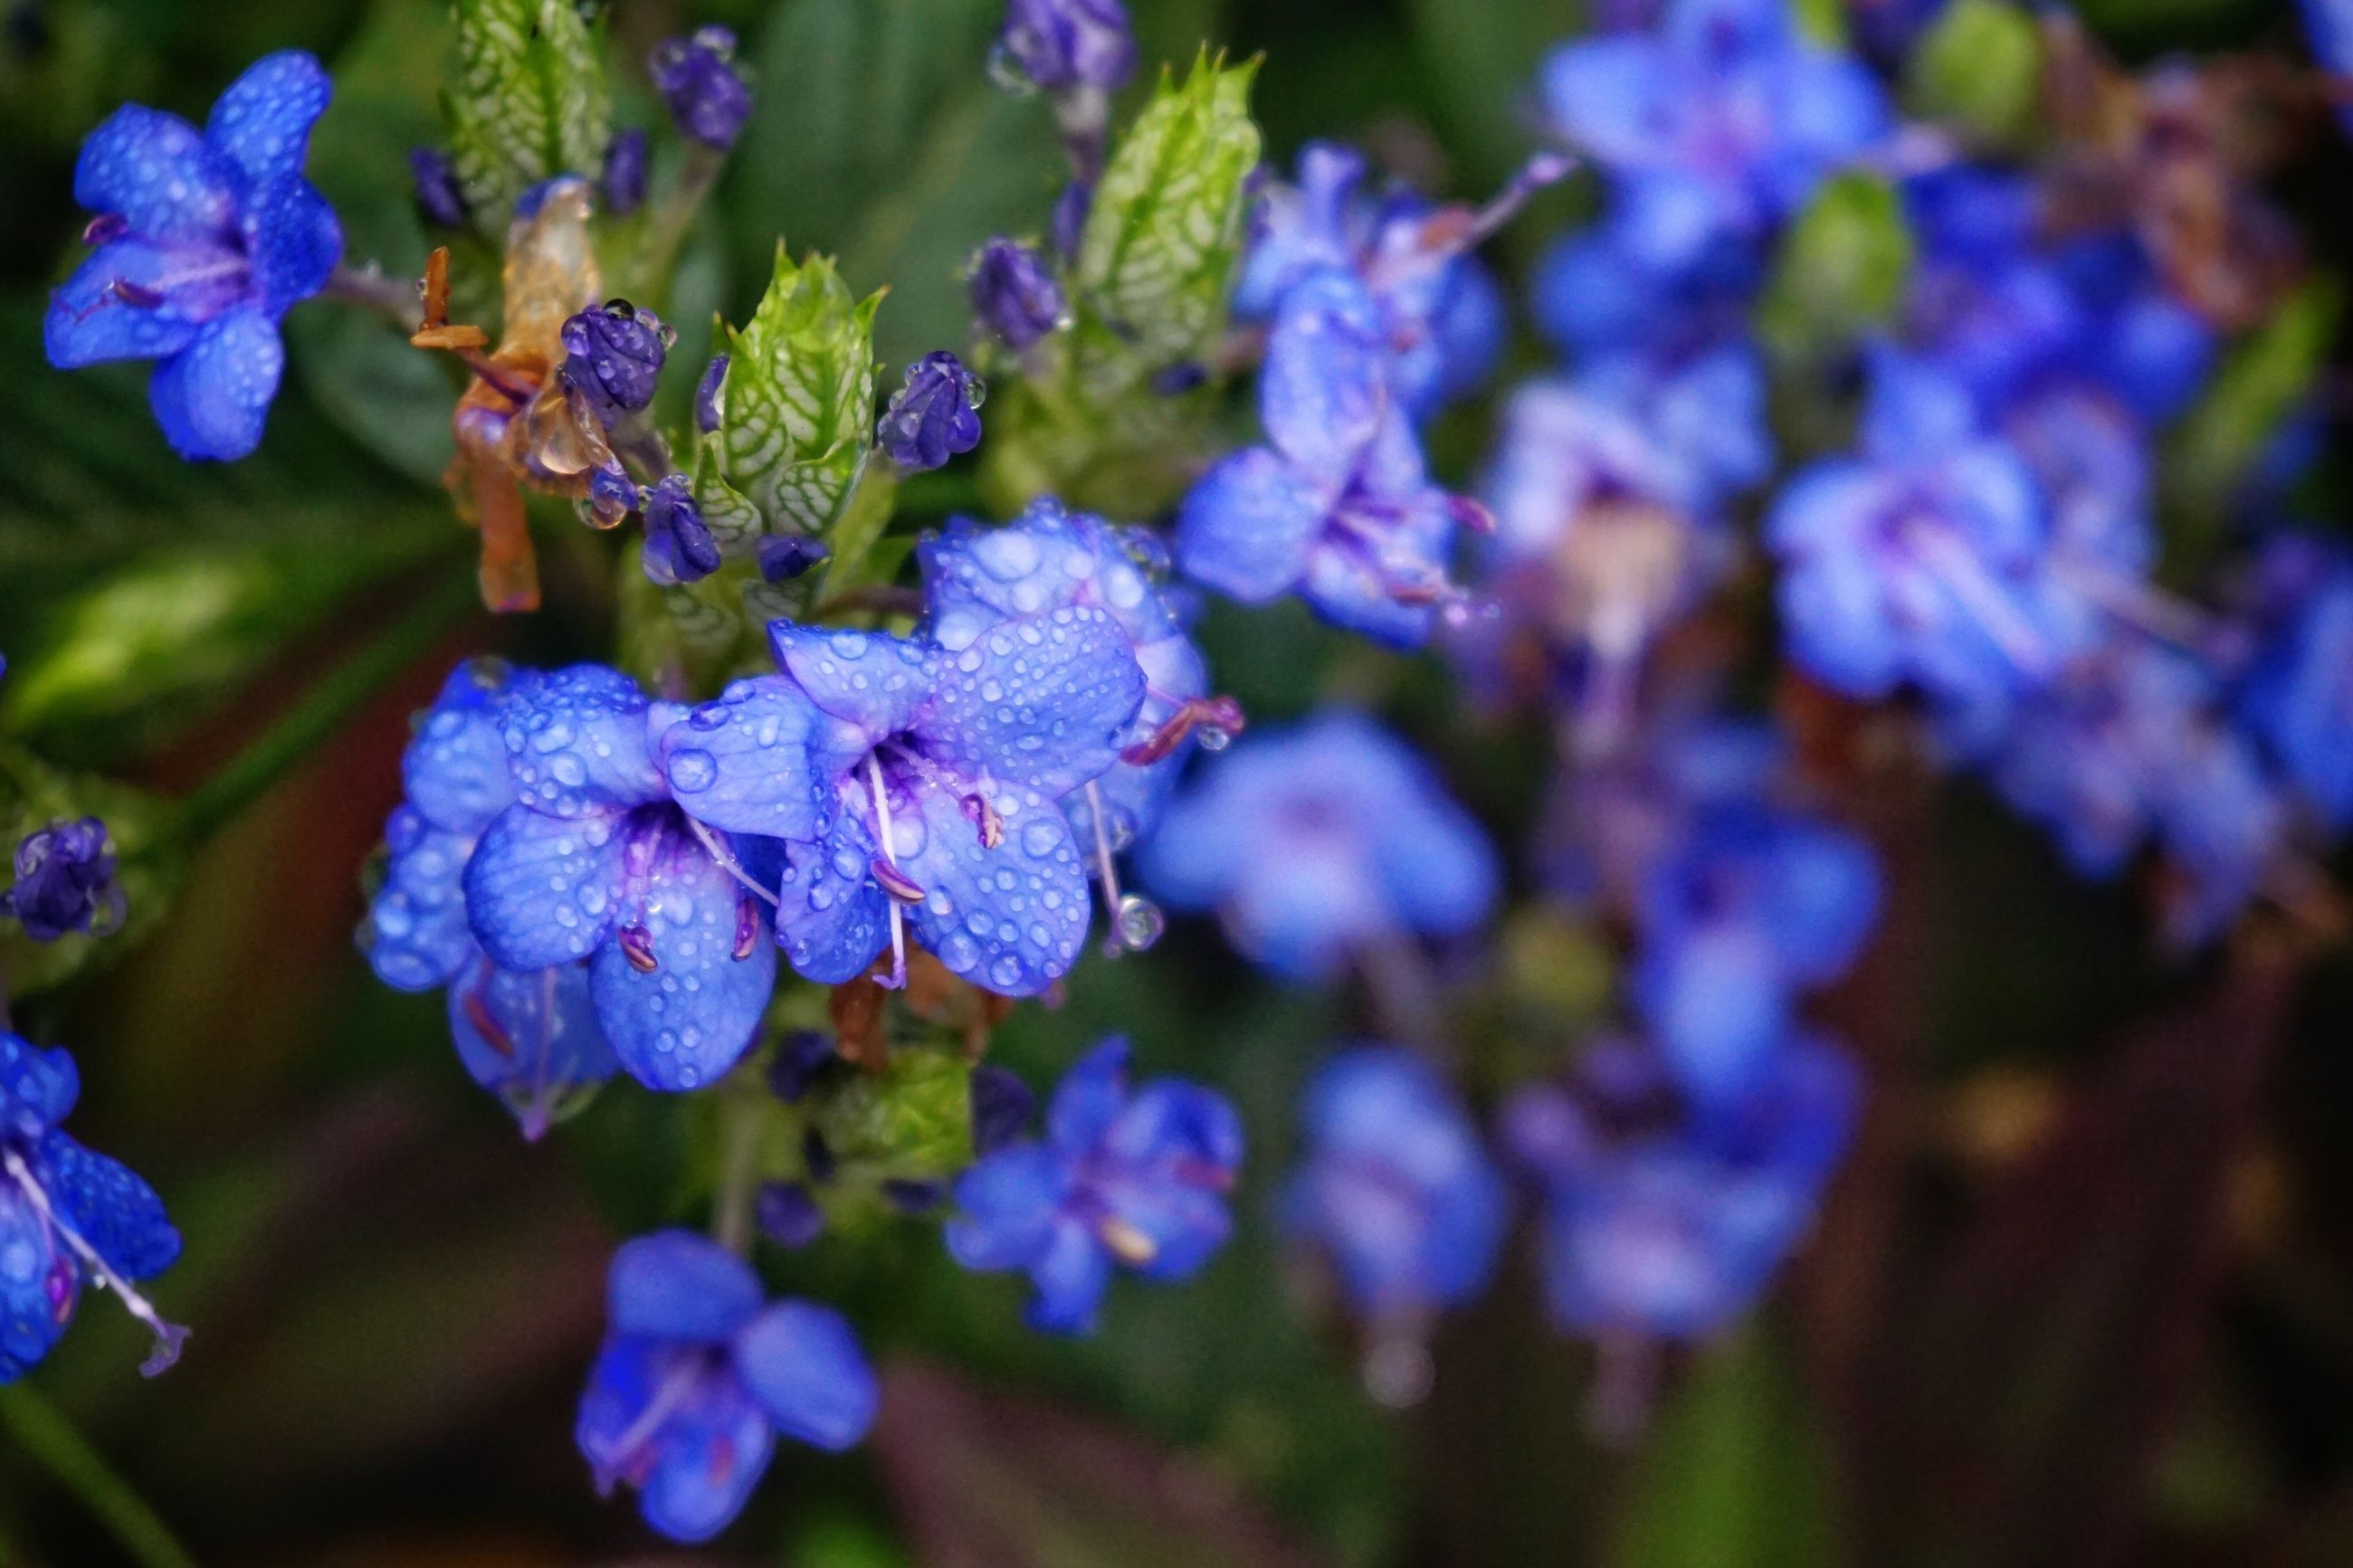 flower, purple, freshness, fragility, petal, growth, beauty in nature, flower head, blooming, close-up, focus on foreground, nature, plant, in bloom, selective focus, blue, park - man made space, outdoors, springtime, blossom